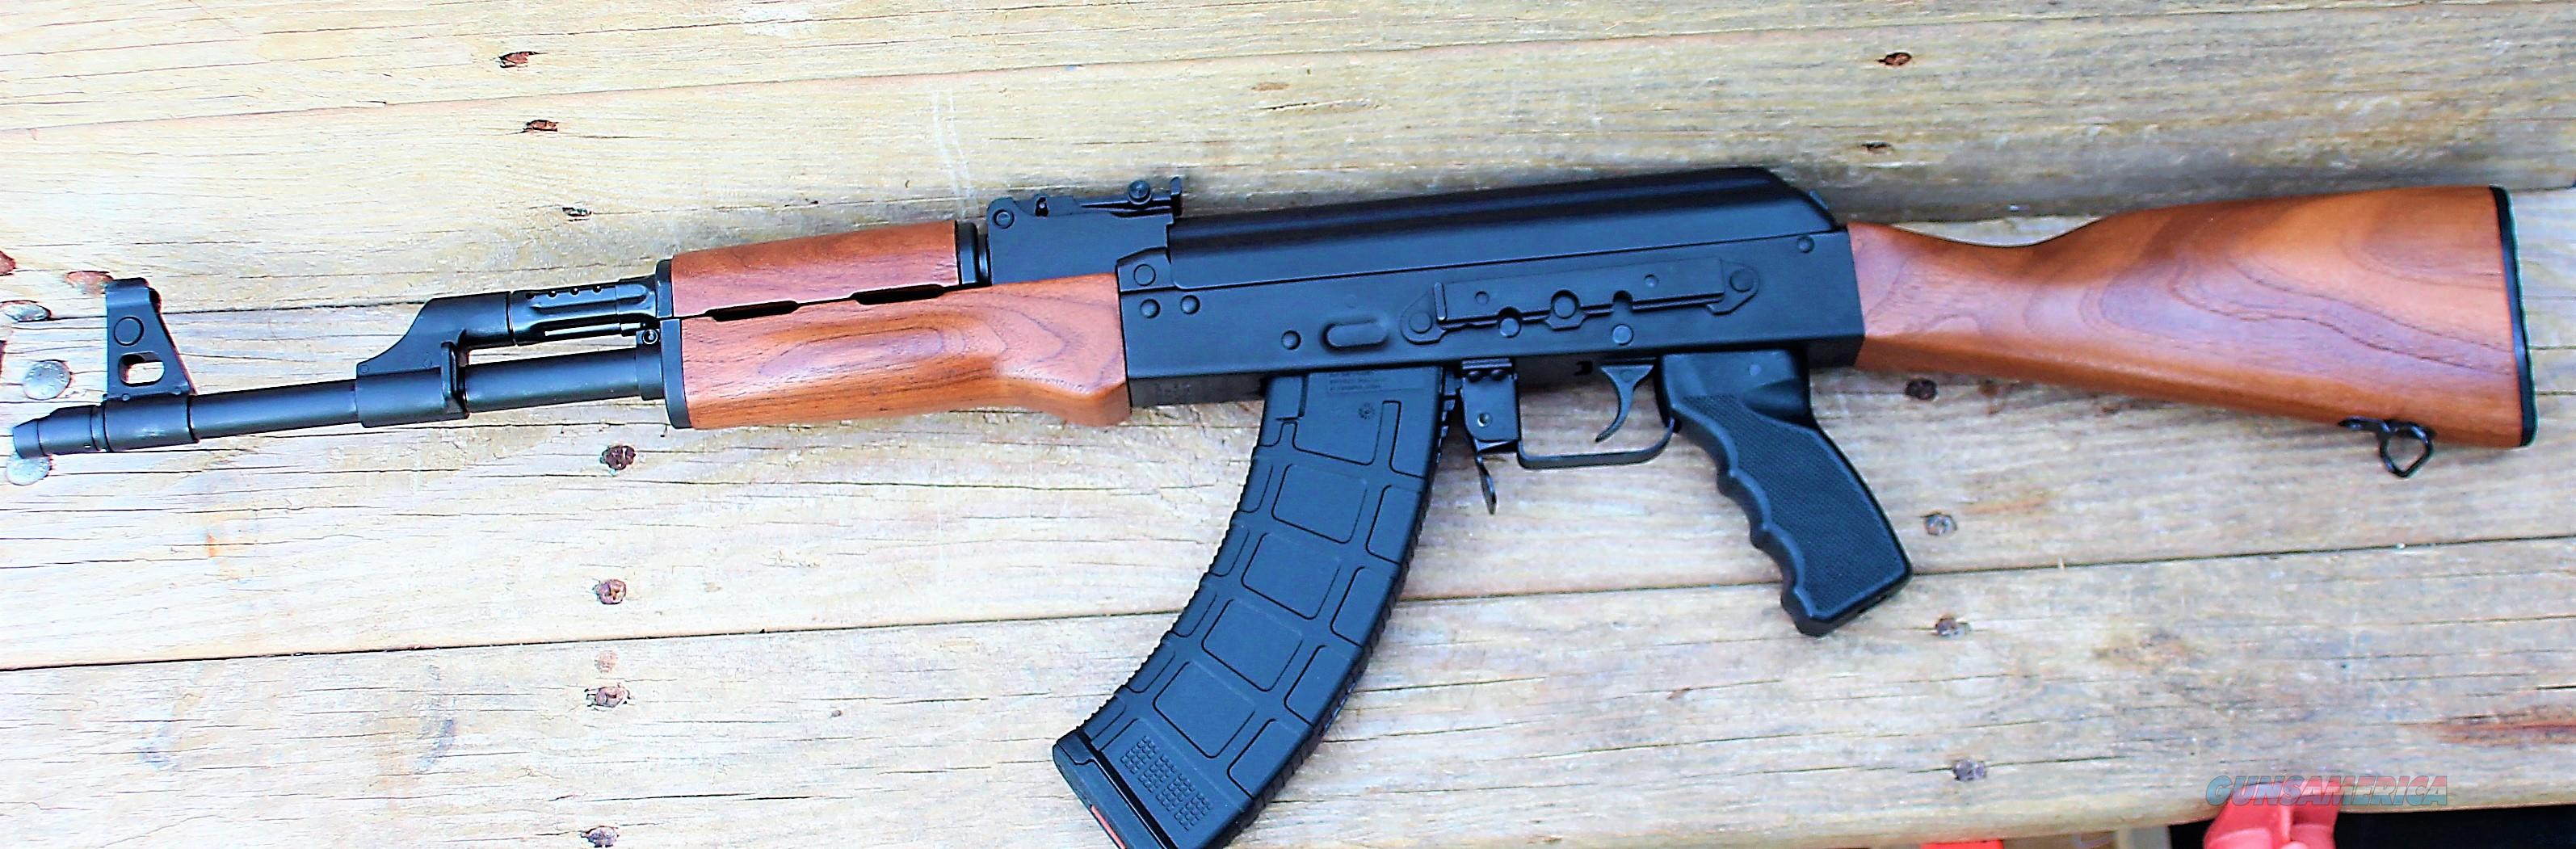 """EASY PAY $63 DOWN LAYAWAY 12 MONTHLY PAYMENTS Century Arms AK47 American Made Red Army Standard ak-47 Walnut stock and forearm RAS47 16.25"""" Chrome Barrel 1:10 Twist Stamped Receiver 30 Rounds Magpul AK-PMAG RAK-1 Enhanced 7.62x39 RI2759N   Guns > Rifles > Century International Arms - Rifles > Rifles"""